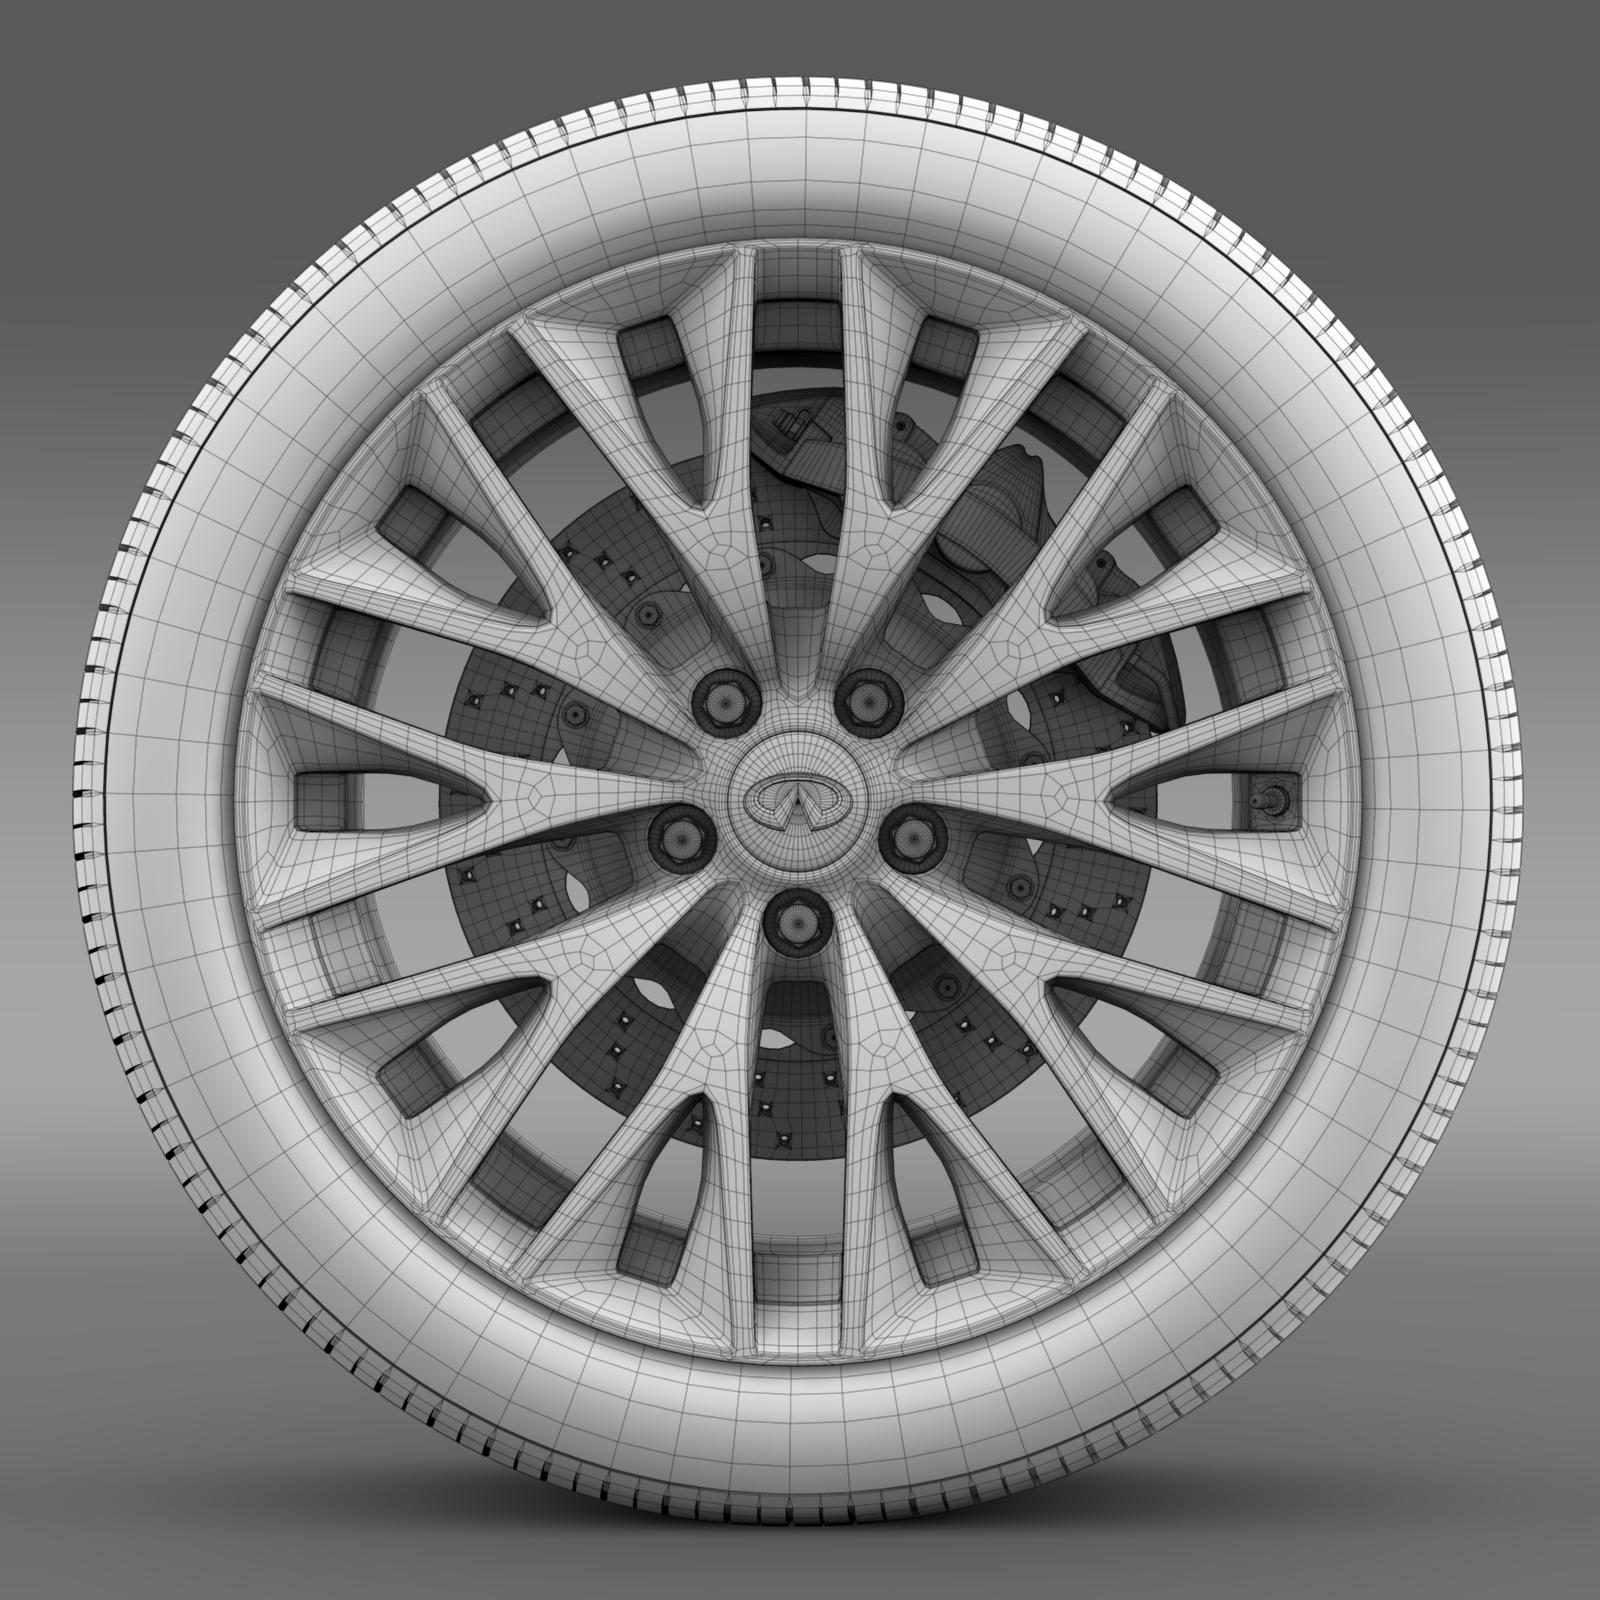 infinity ml wheel 3d model 3ds max fbx c4d lwo ma mb hrc xsi obj 210706